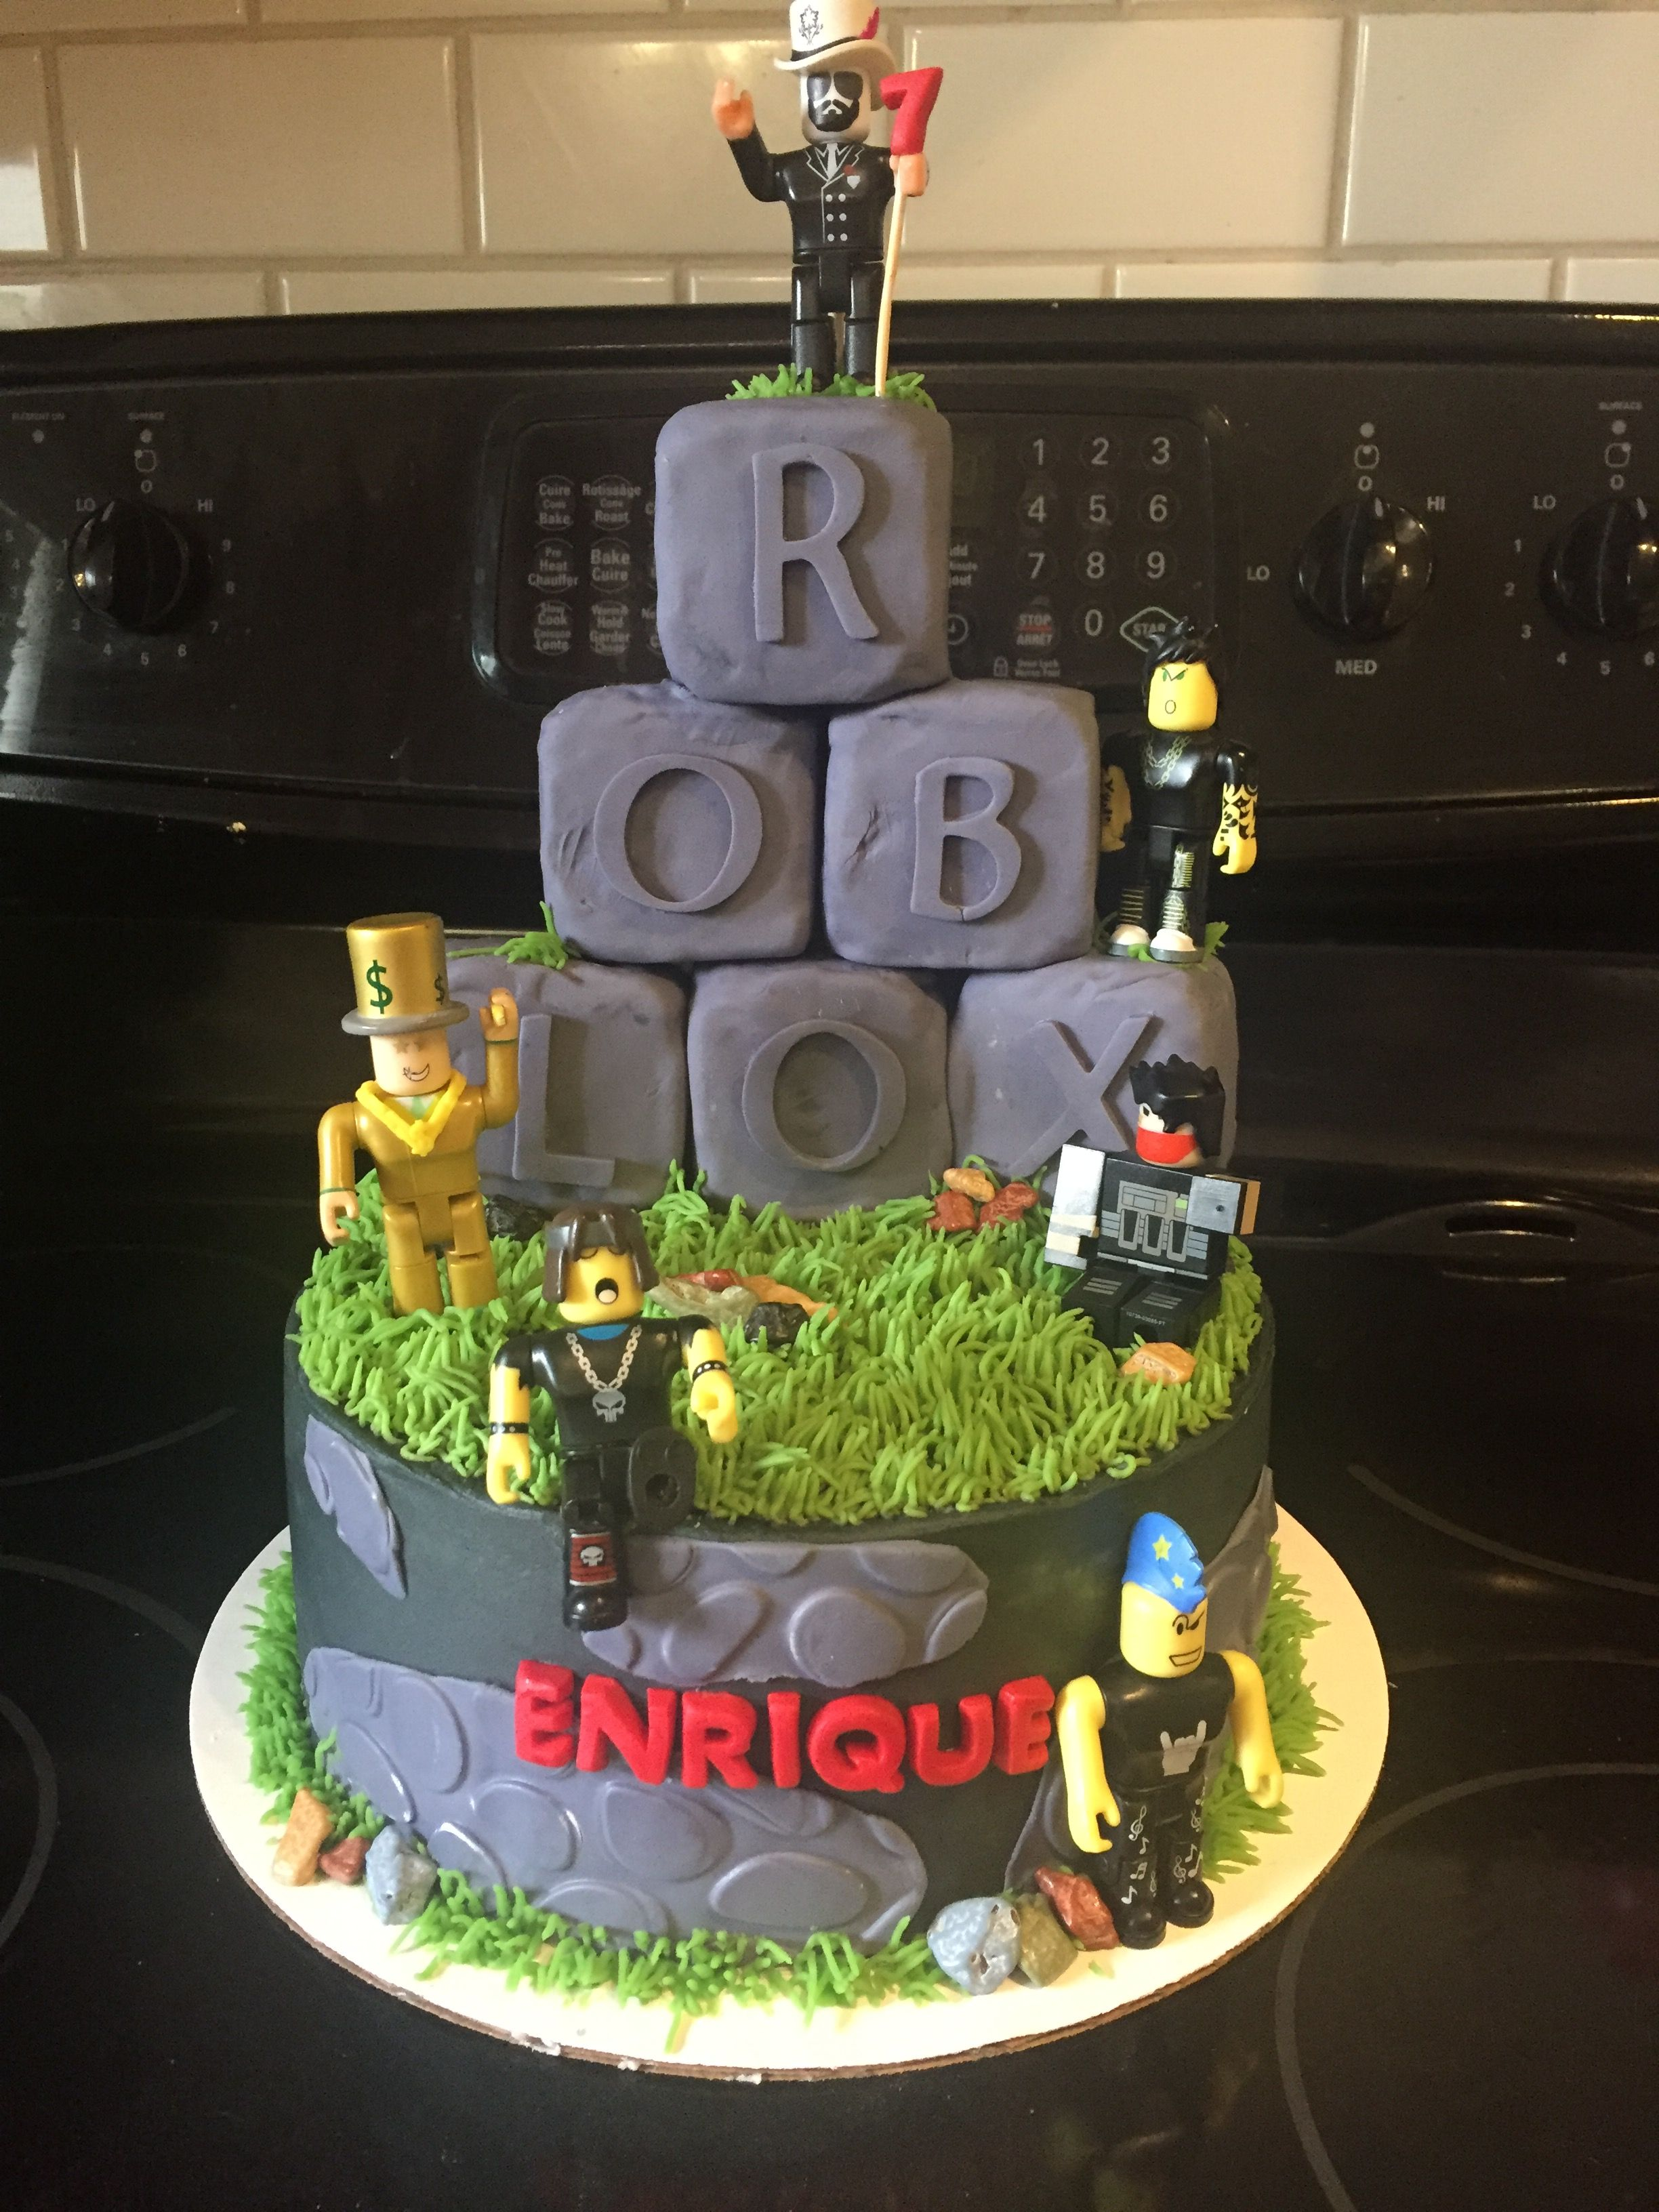 Roblox Cake For Boy Roblox Cake Roblox Birthday Cake Roblox Cake Birthday Party Cake